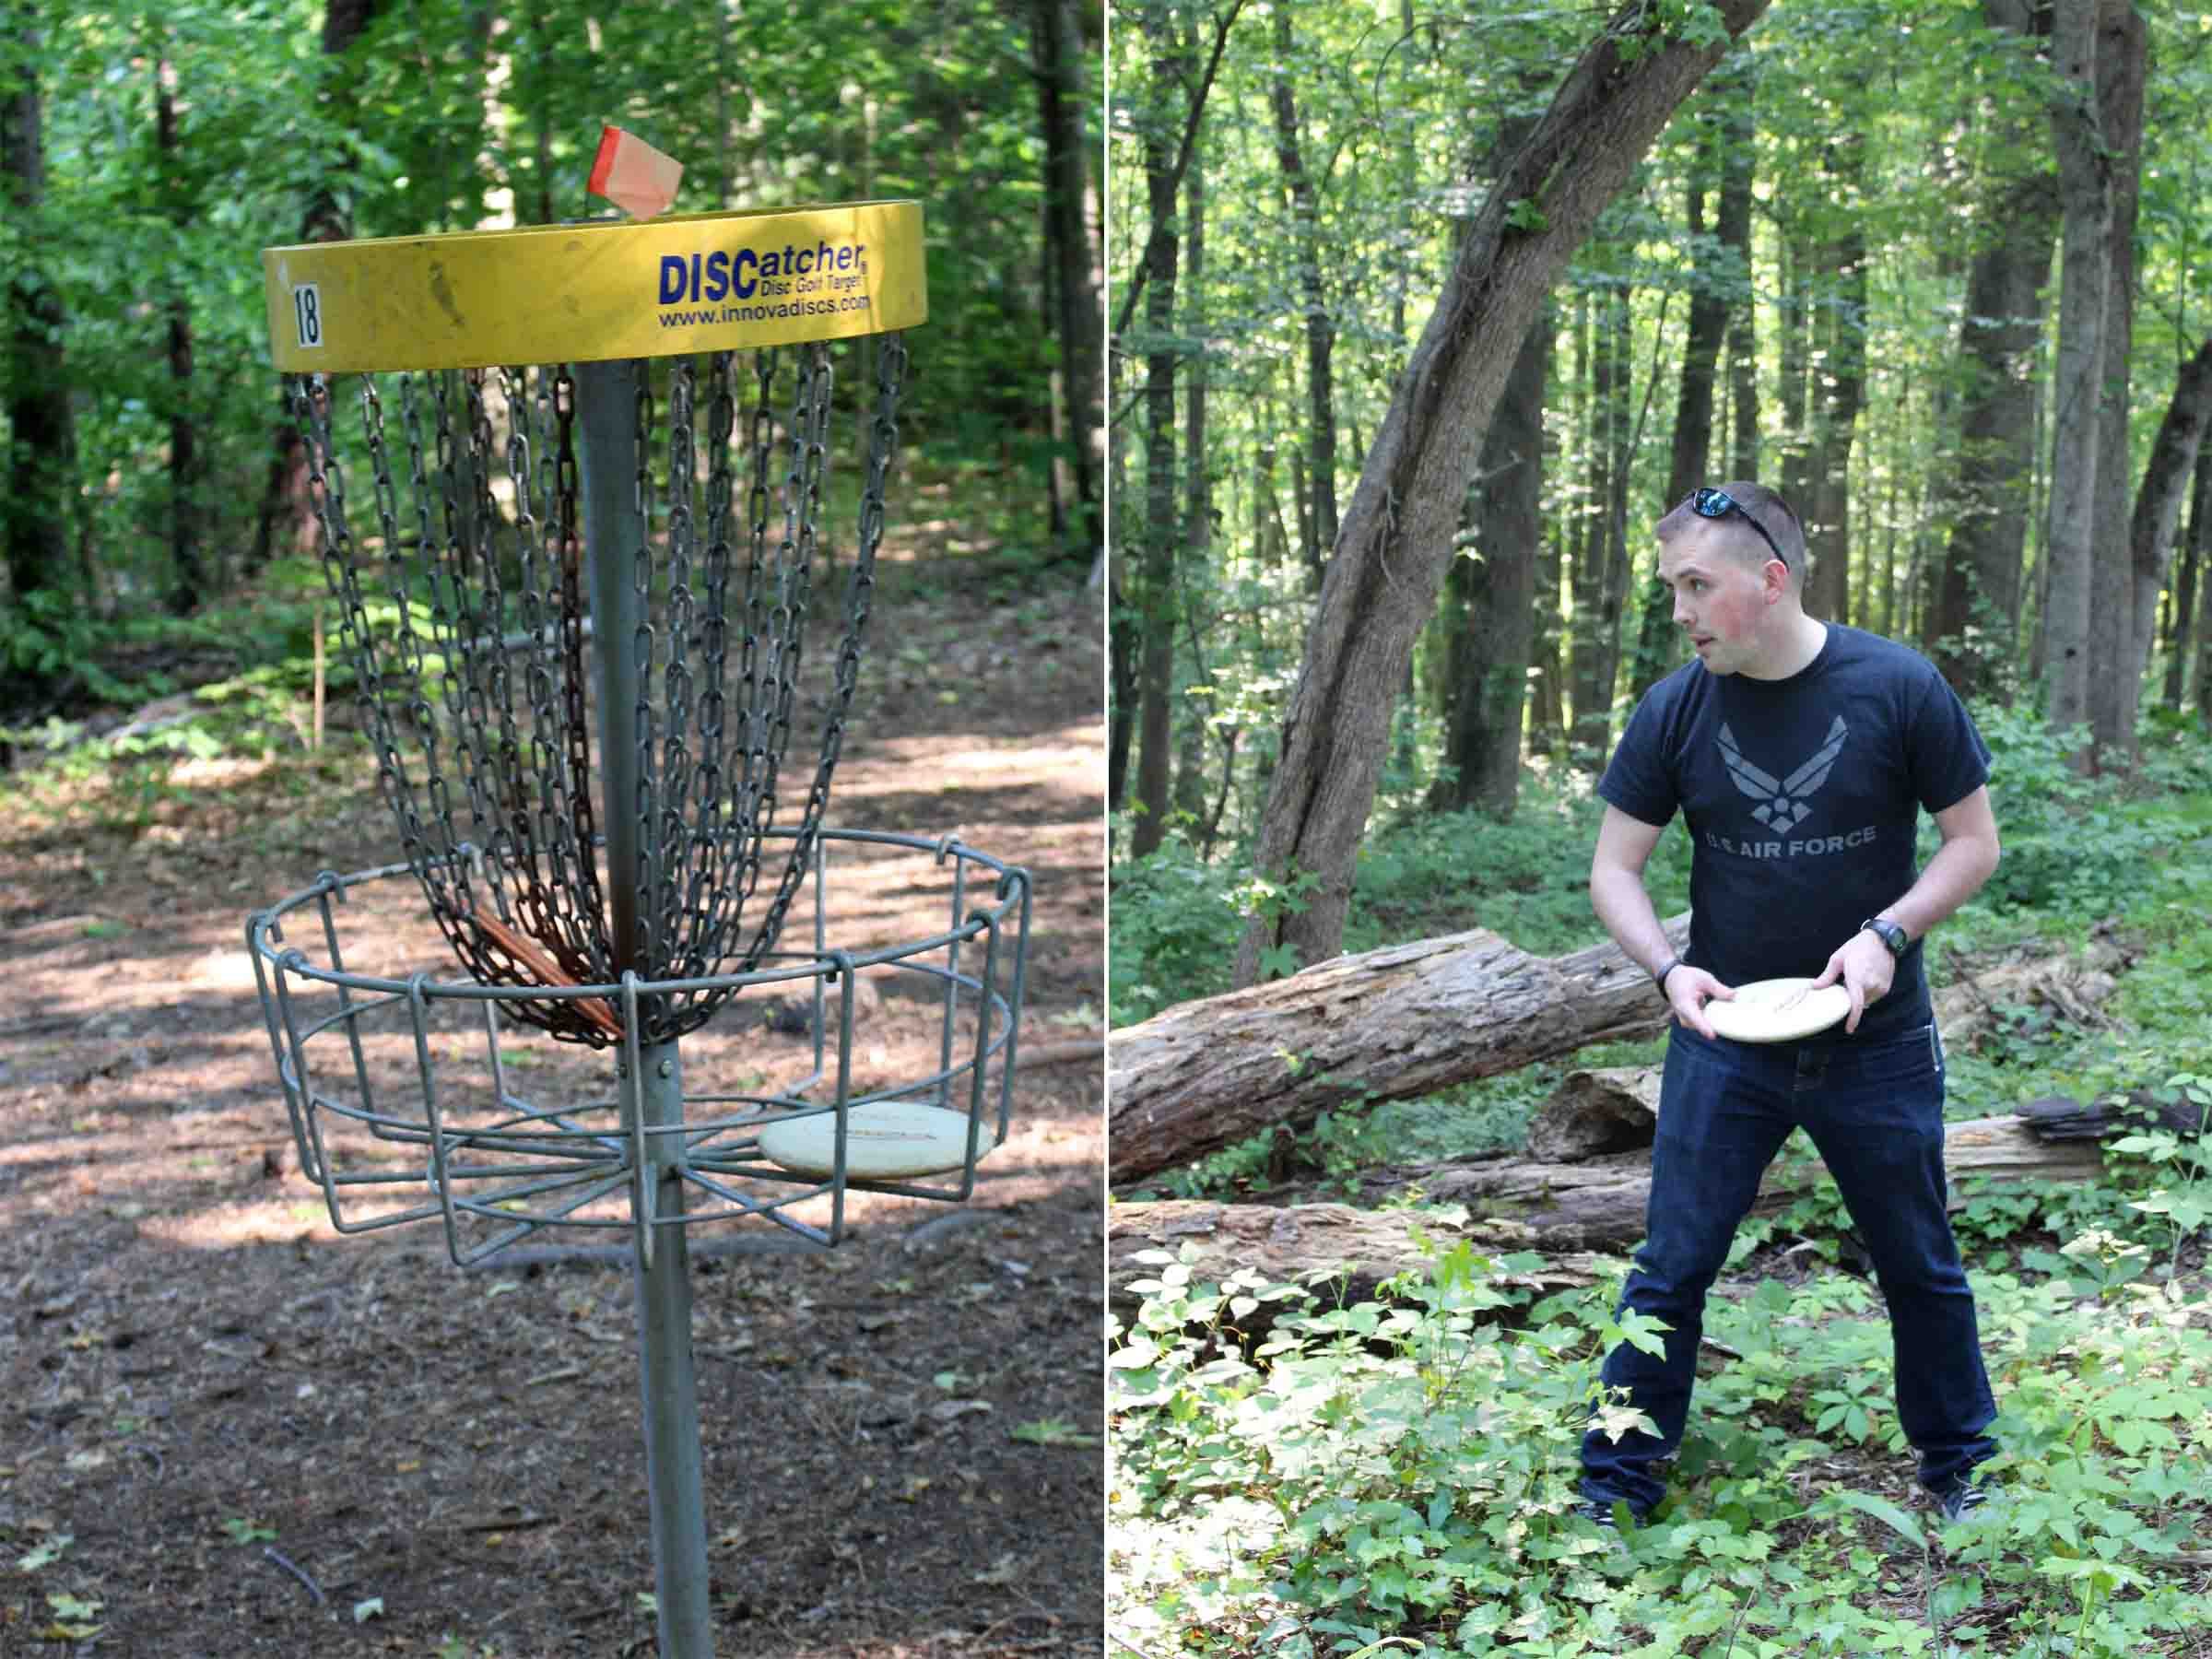 Taking a disc golf study break in the summertime!